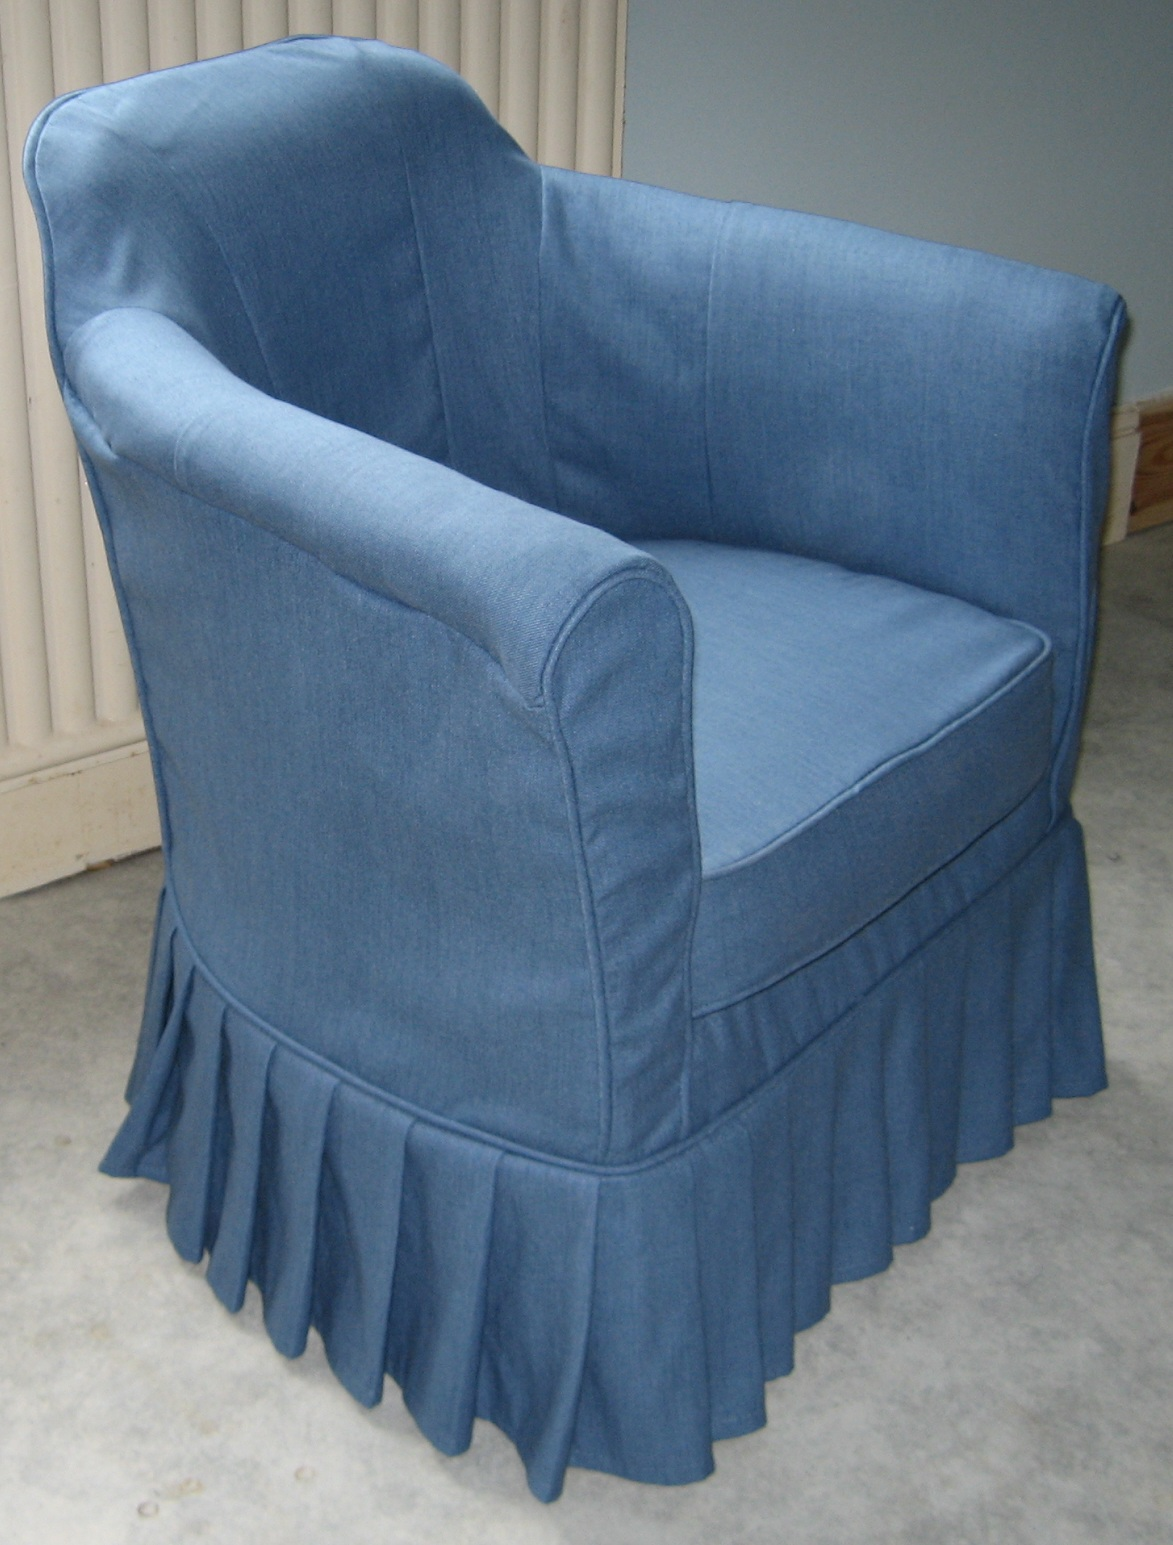 Barrel Chair Slipcover Tub Chair Slipcovers On Sale Now Elegant Changes Elegant Changes